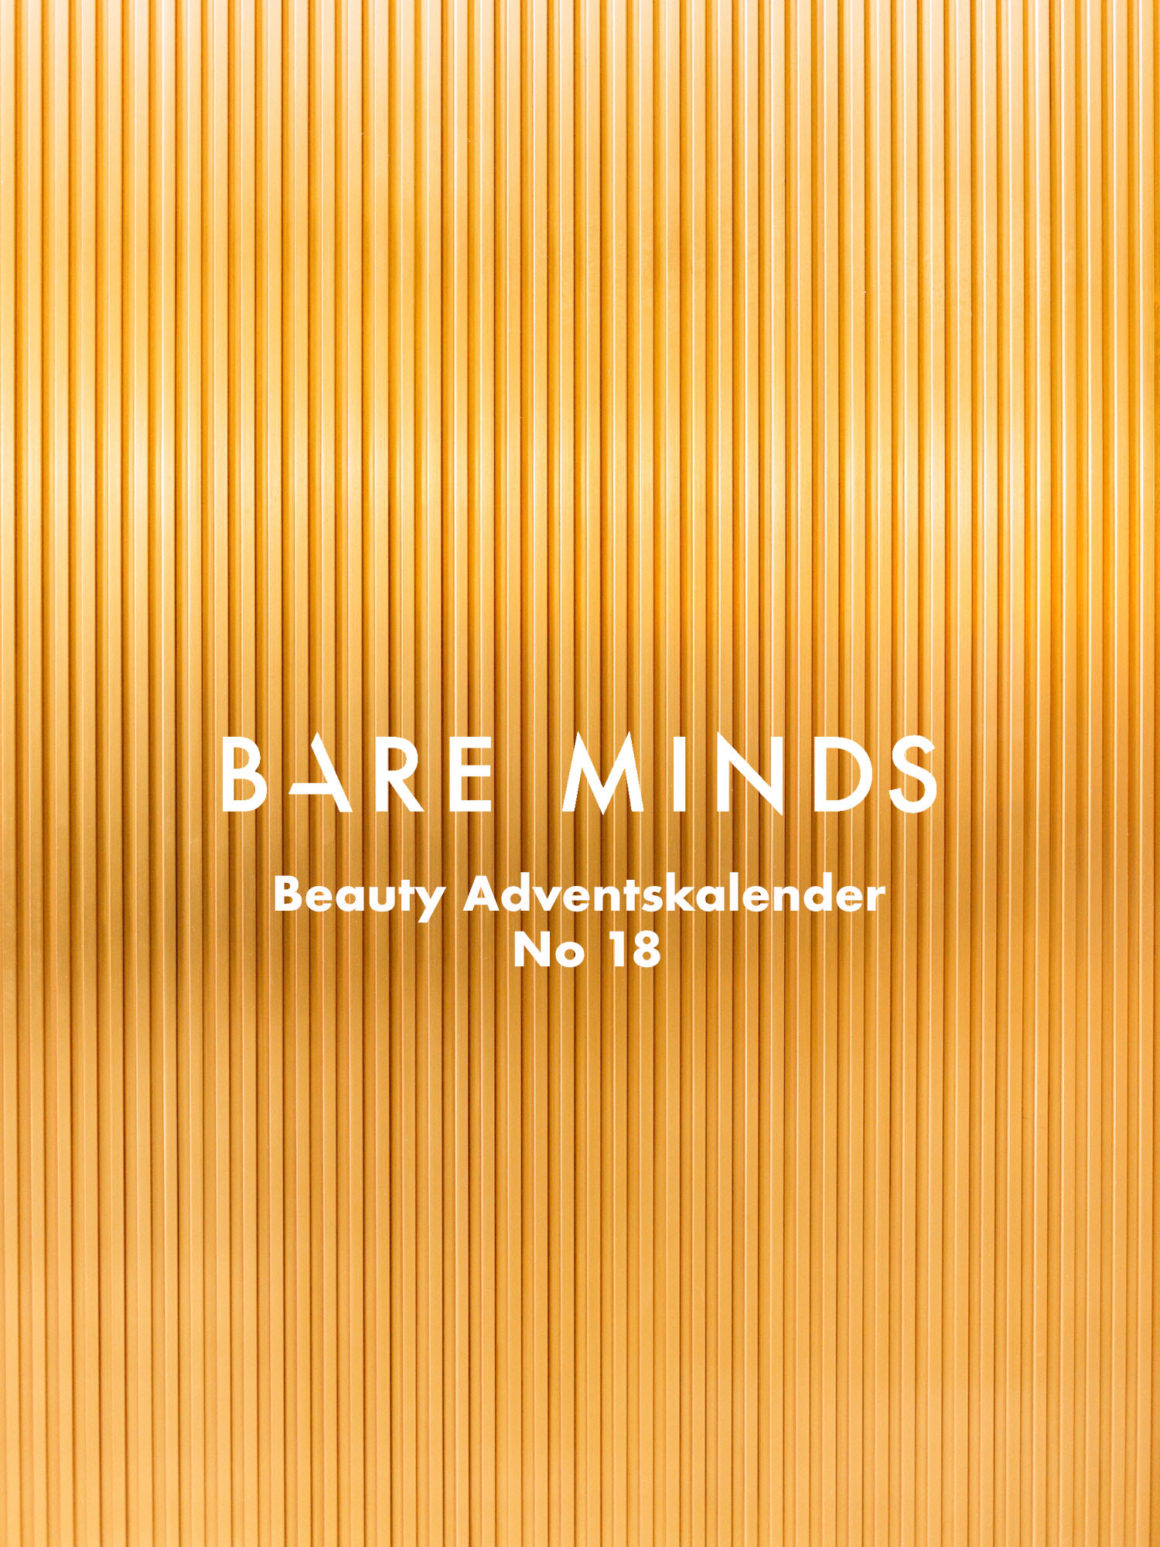 Bare Minds Beauty Adventskalender erol-ahmed-536447-unsplash